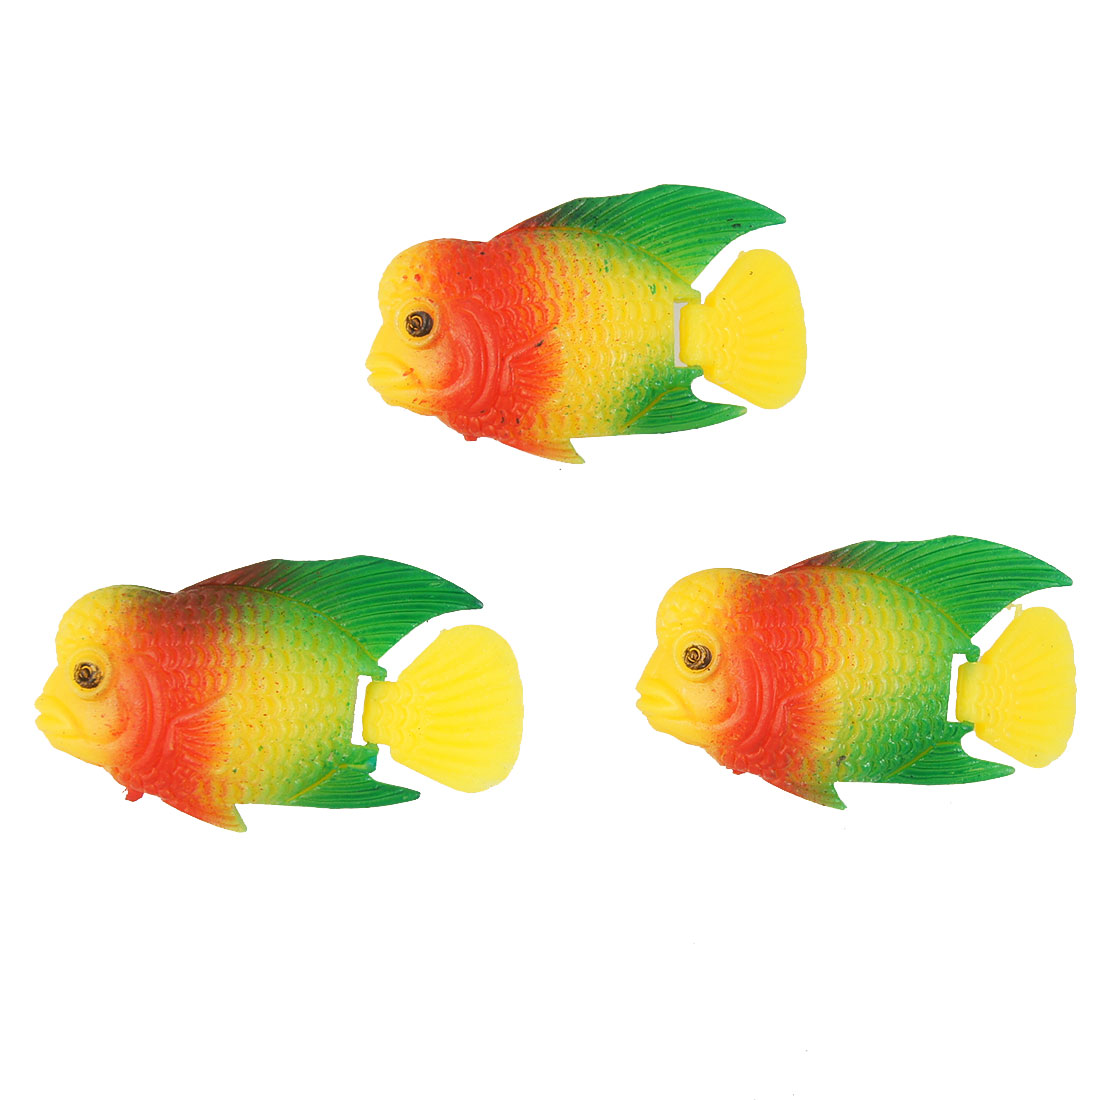 Aquarium Mini Plastic Yellow Flexible Tail Floating Fish 3 Pcs